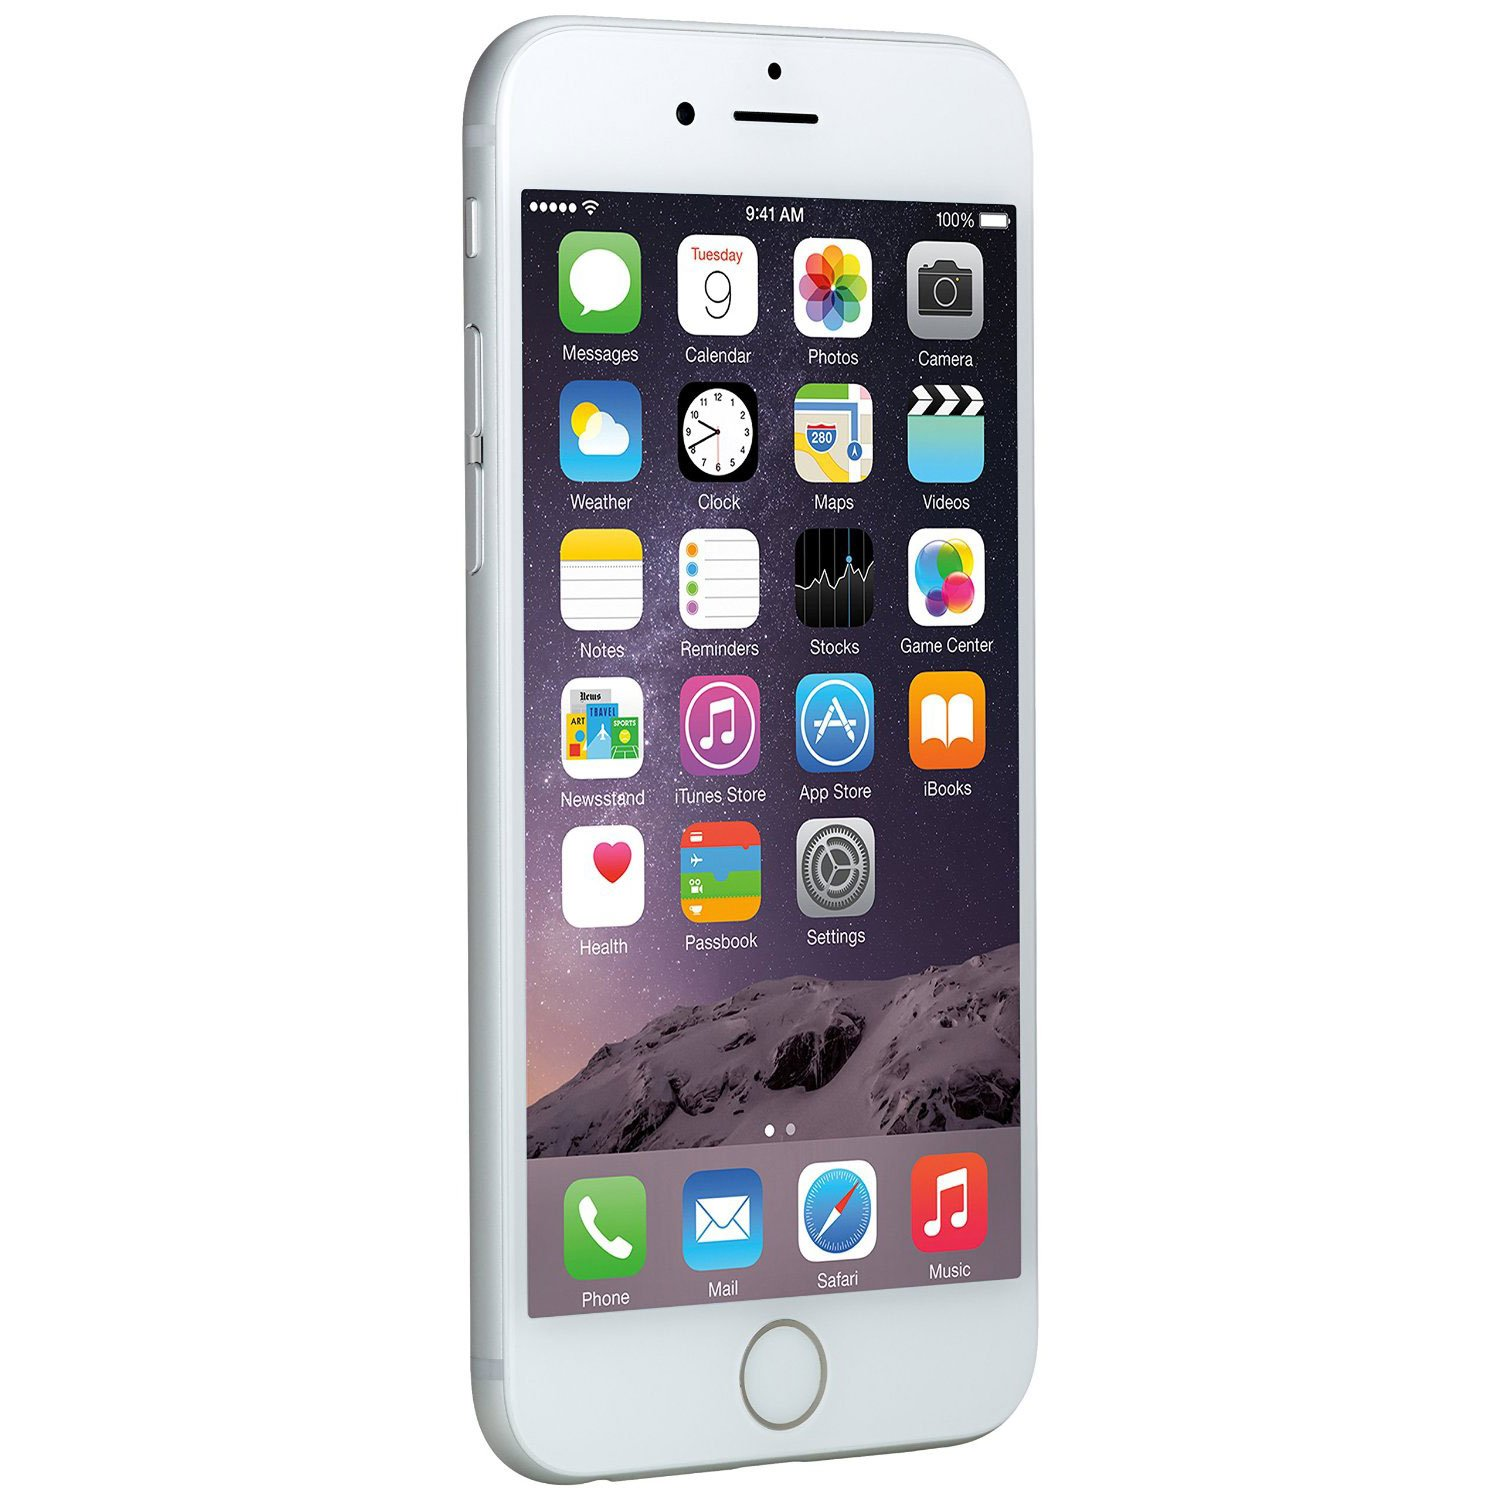 Apple iPhone 6 64 GB AT&T, Silver (Certified Refurbished) by Apple